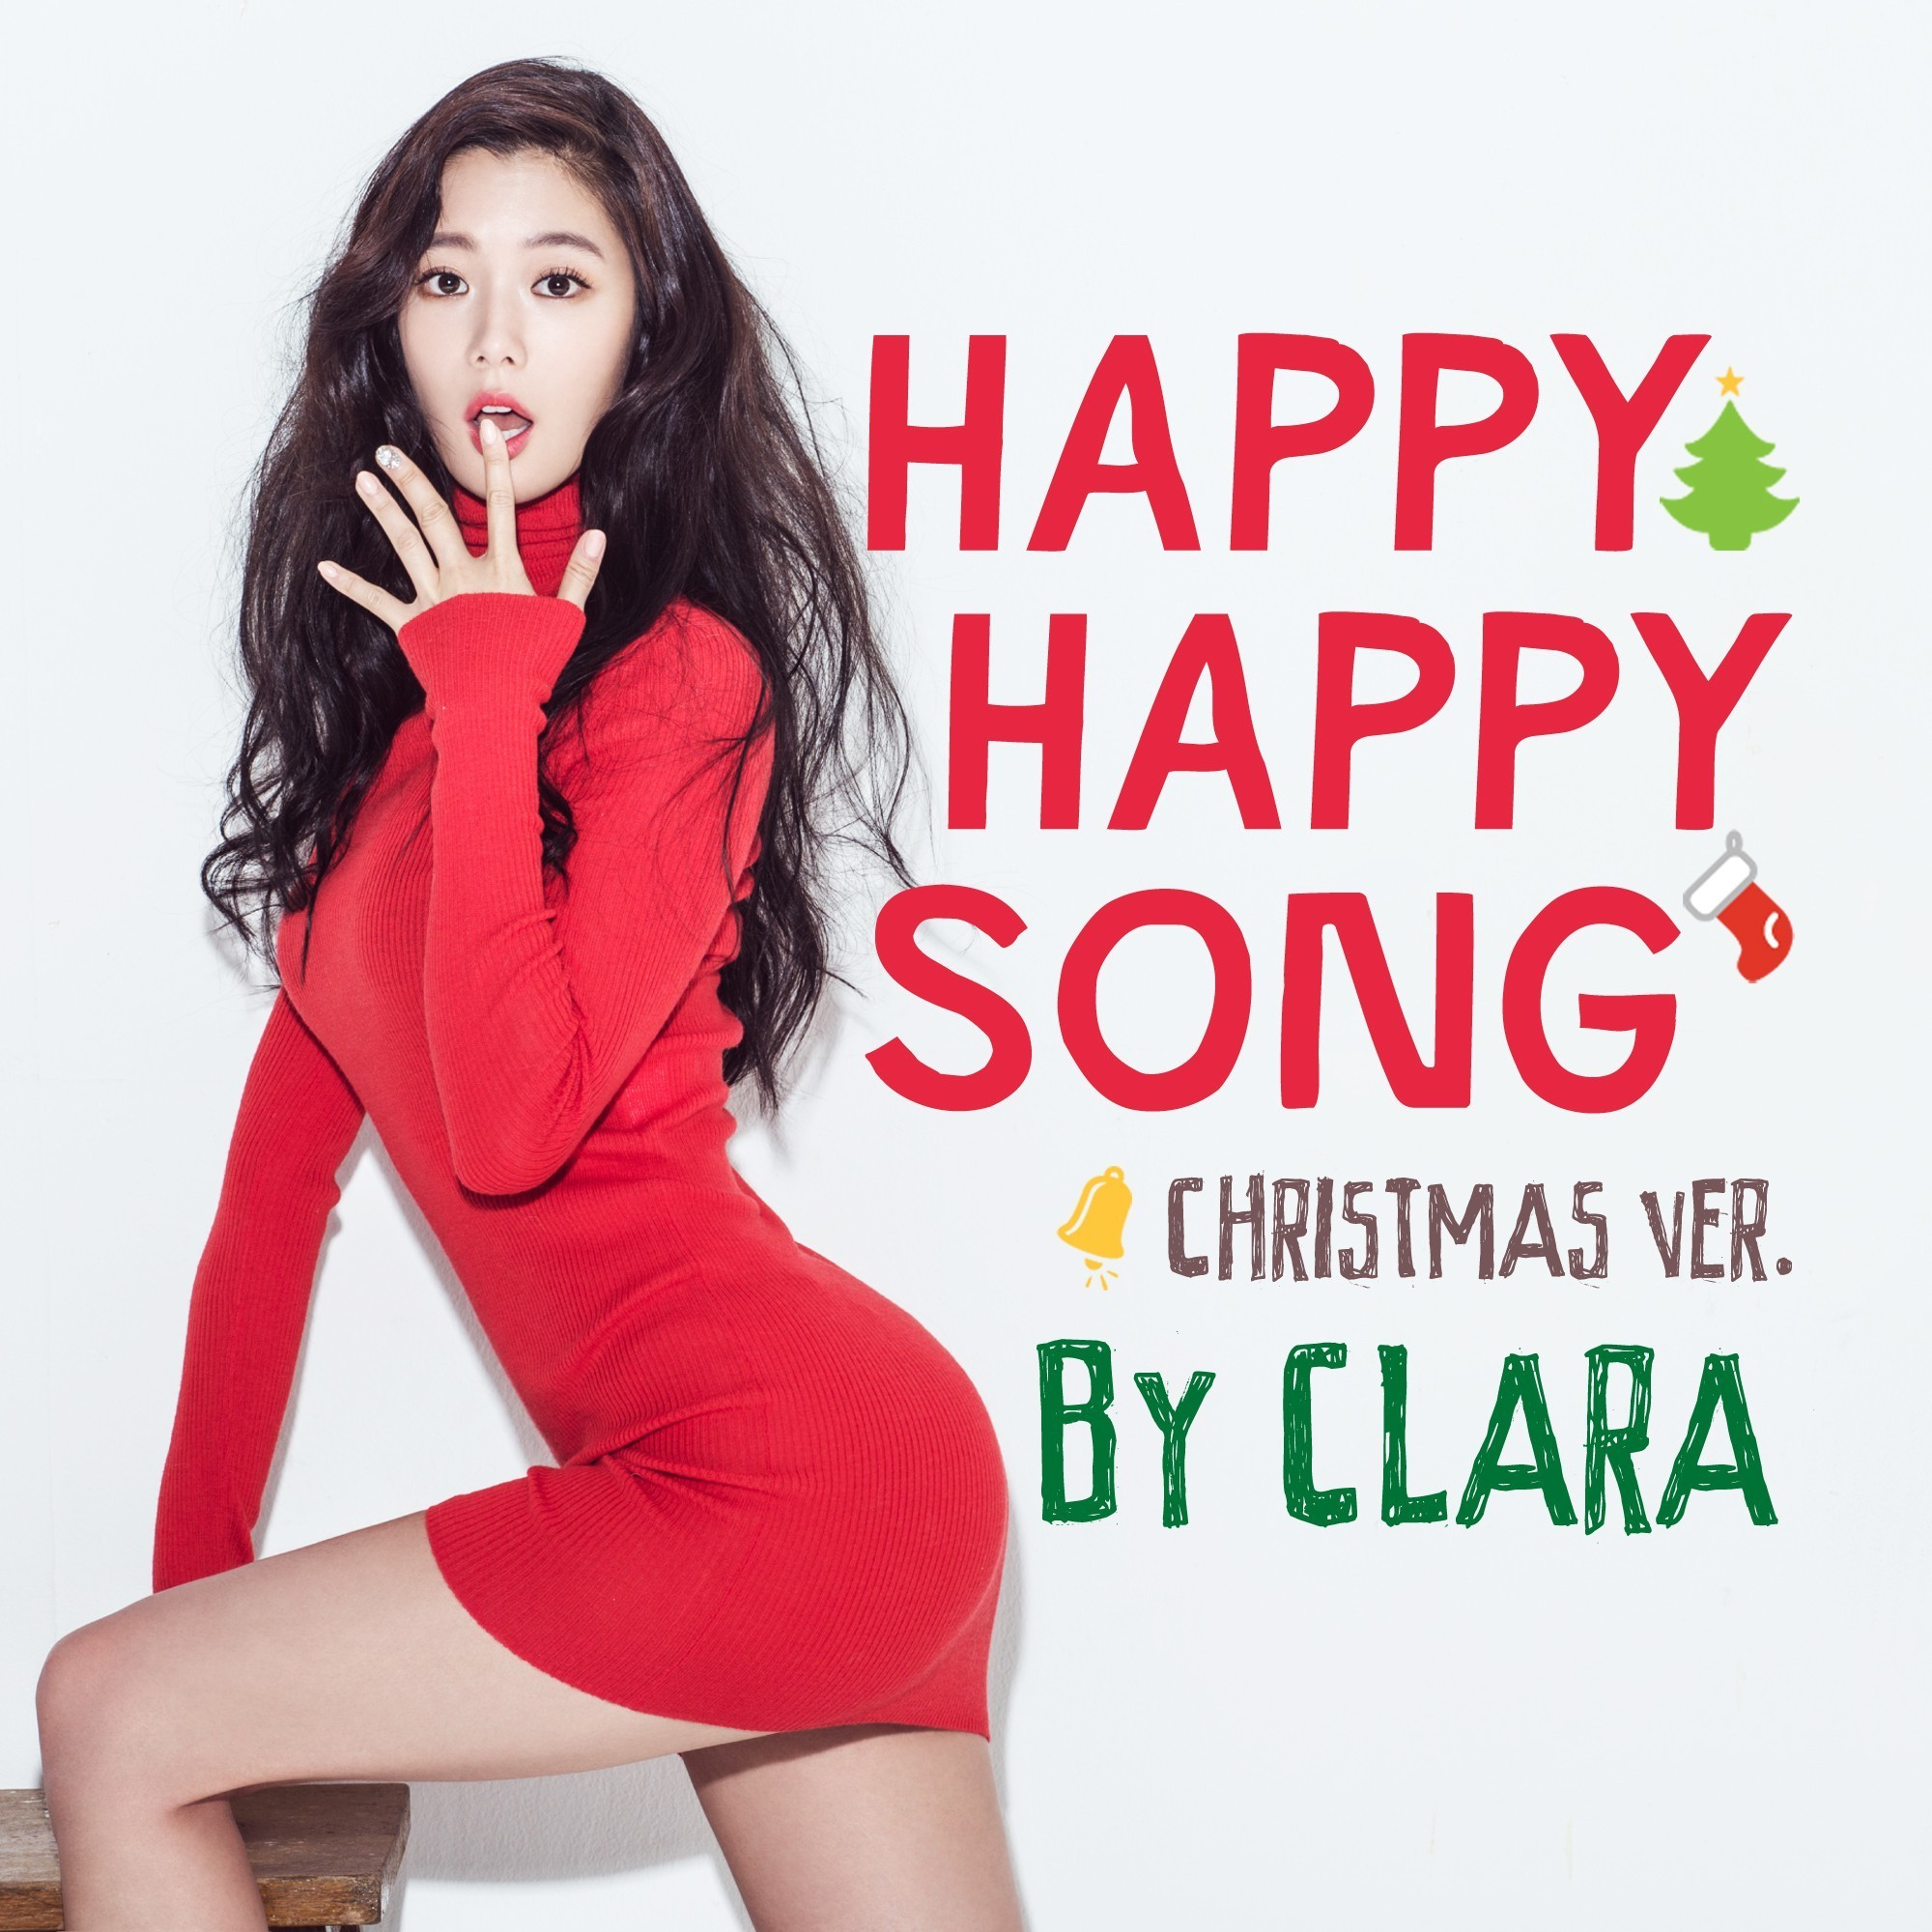 Happy Happy Song (Christmas ver.) 앨범정보